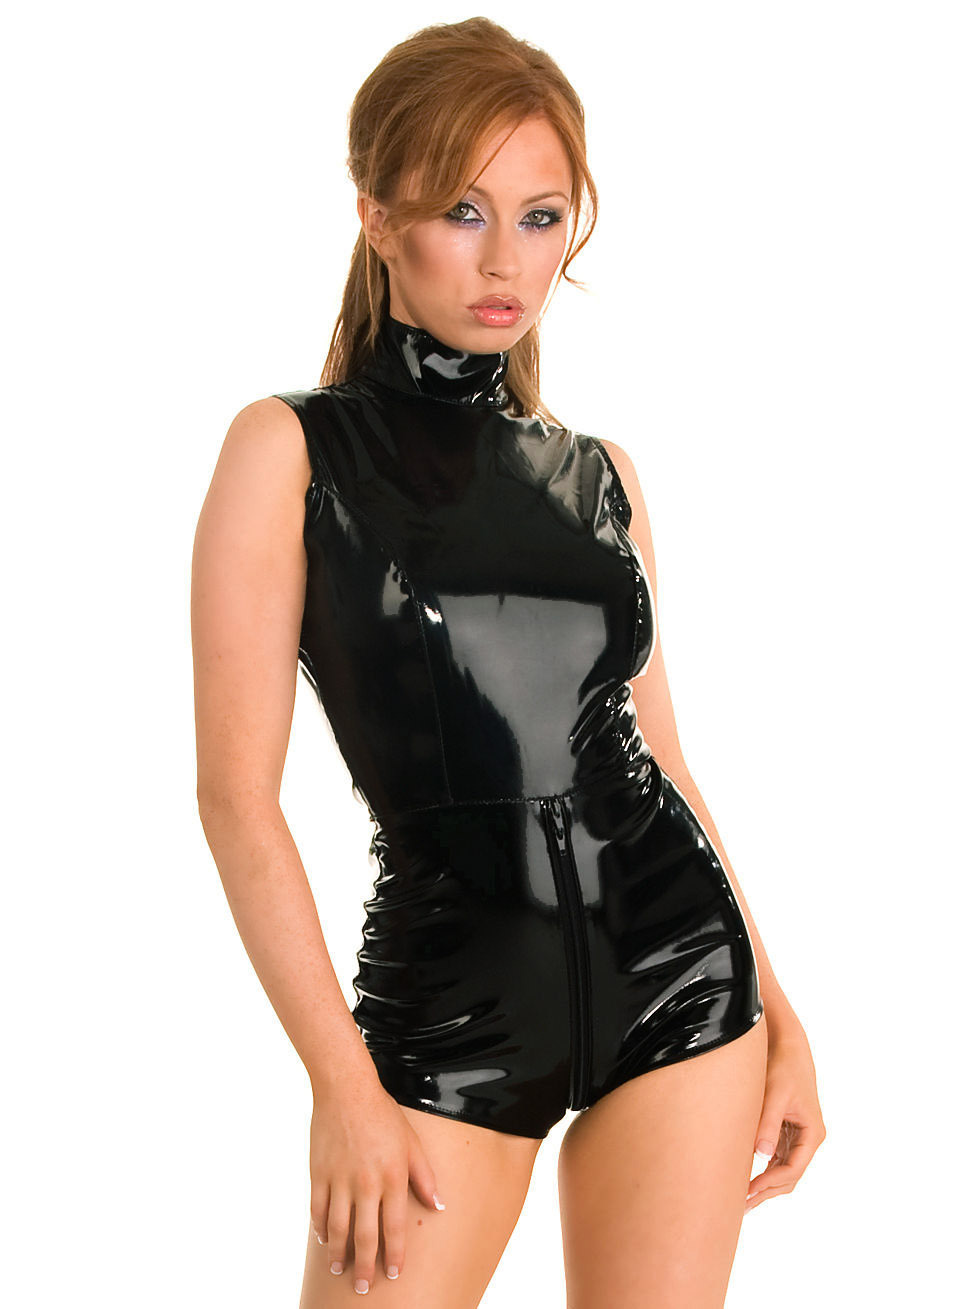 Shame! Sexy girls black leather body suits opinion